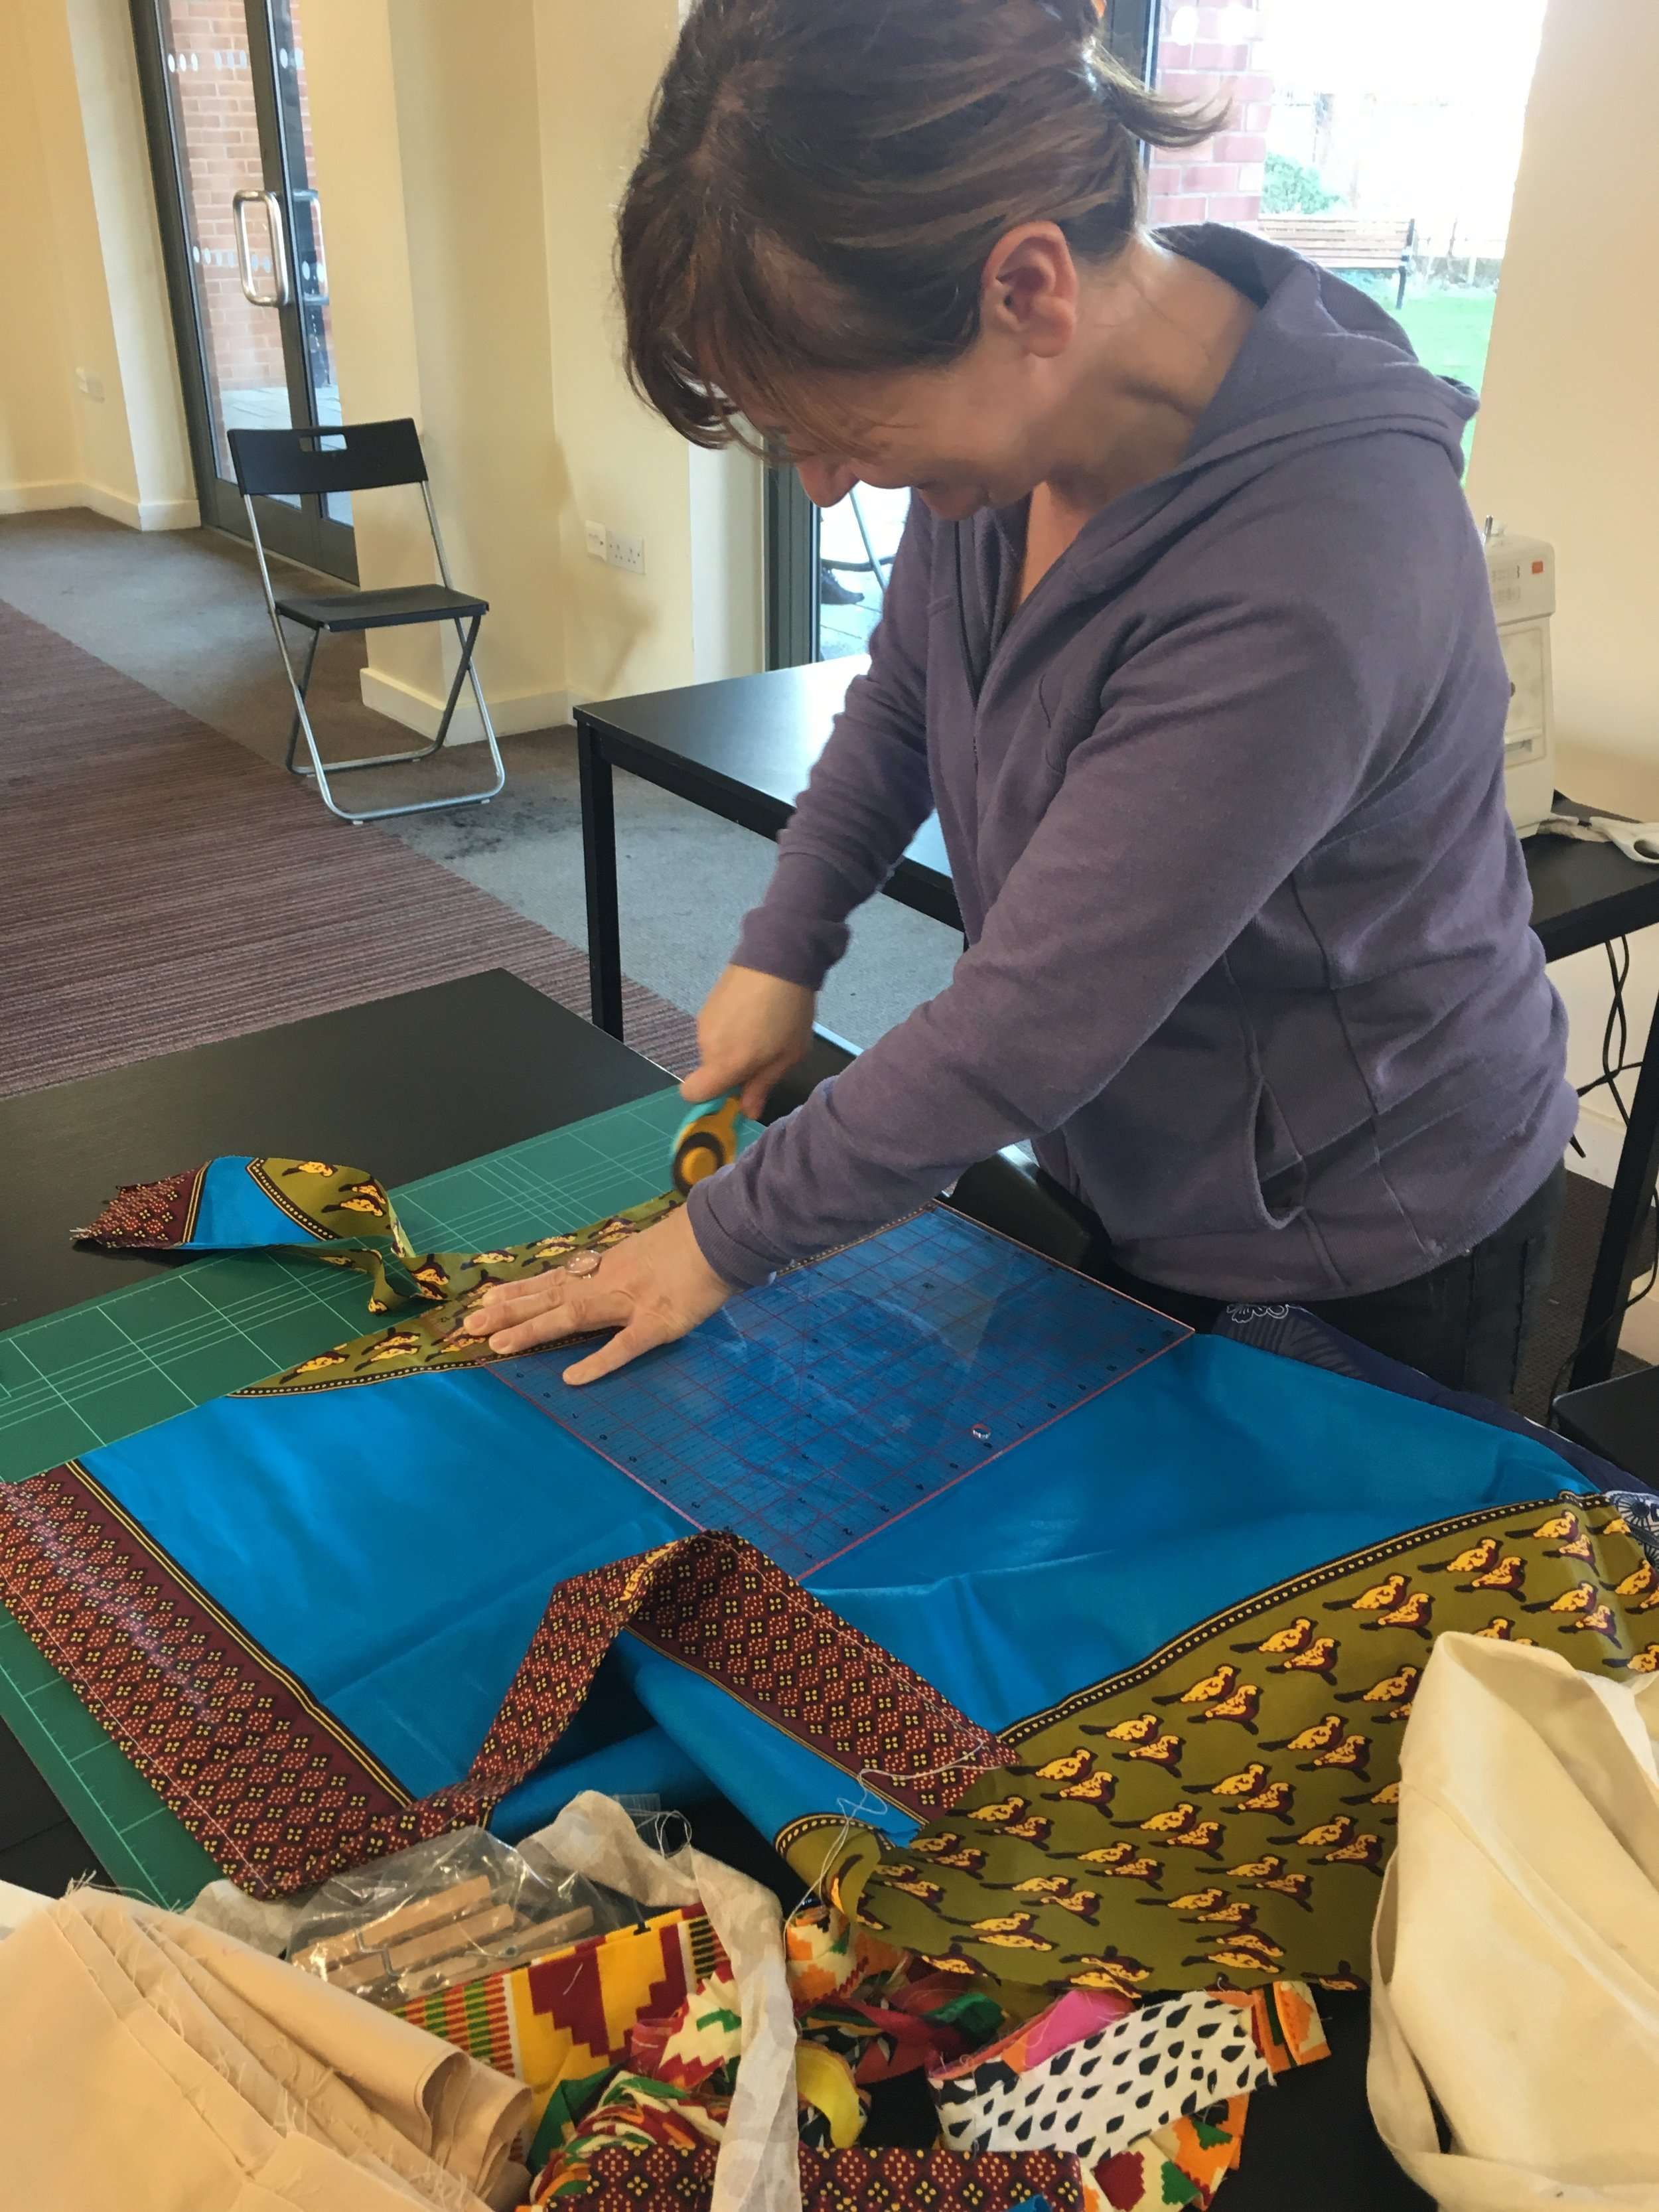 - Preparing the fabric for weaving